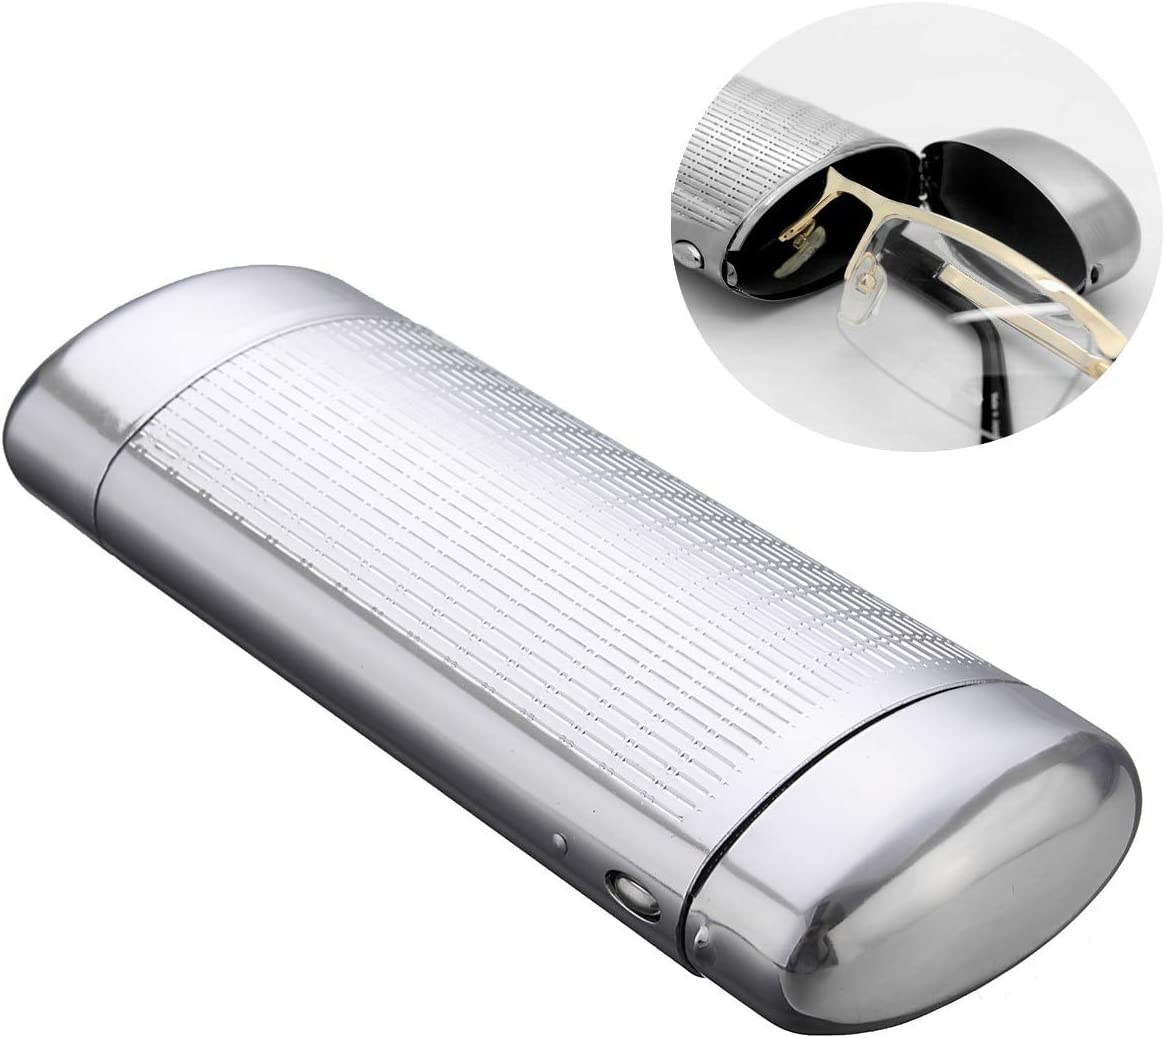 JohnnyBui 15x5.5x3cm Glasses Storage Box Silver Aluminum Metal Glasses Case Adult Medium Size Travel Portable Eyeglasses Organizers